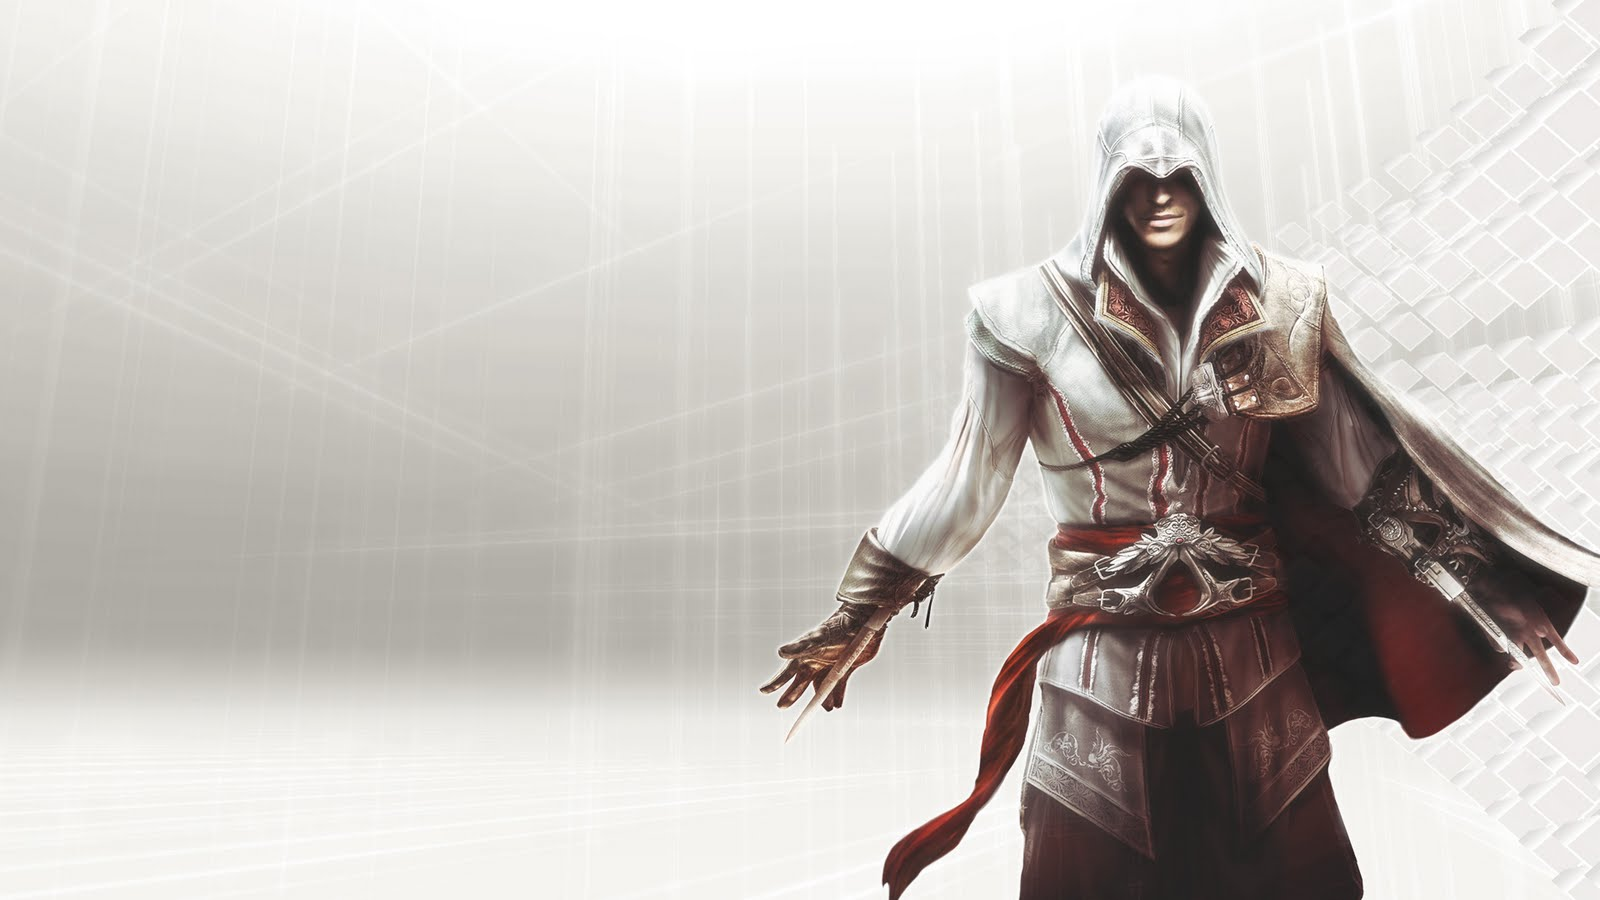 Assassins creed HD wallpaper GO 4 WALLPAPER DOWNLOAD 1600x900